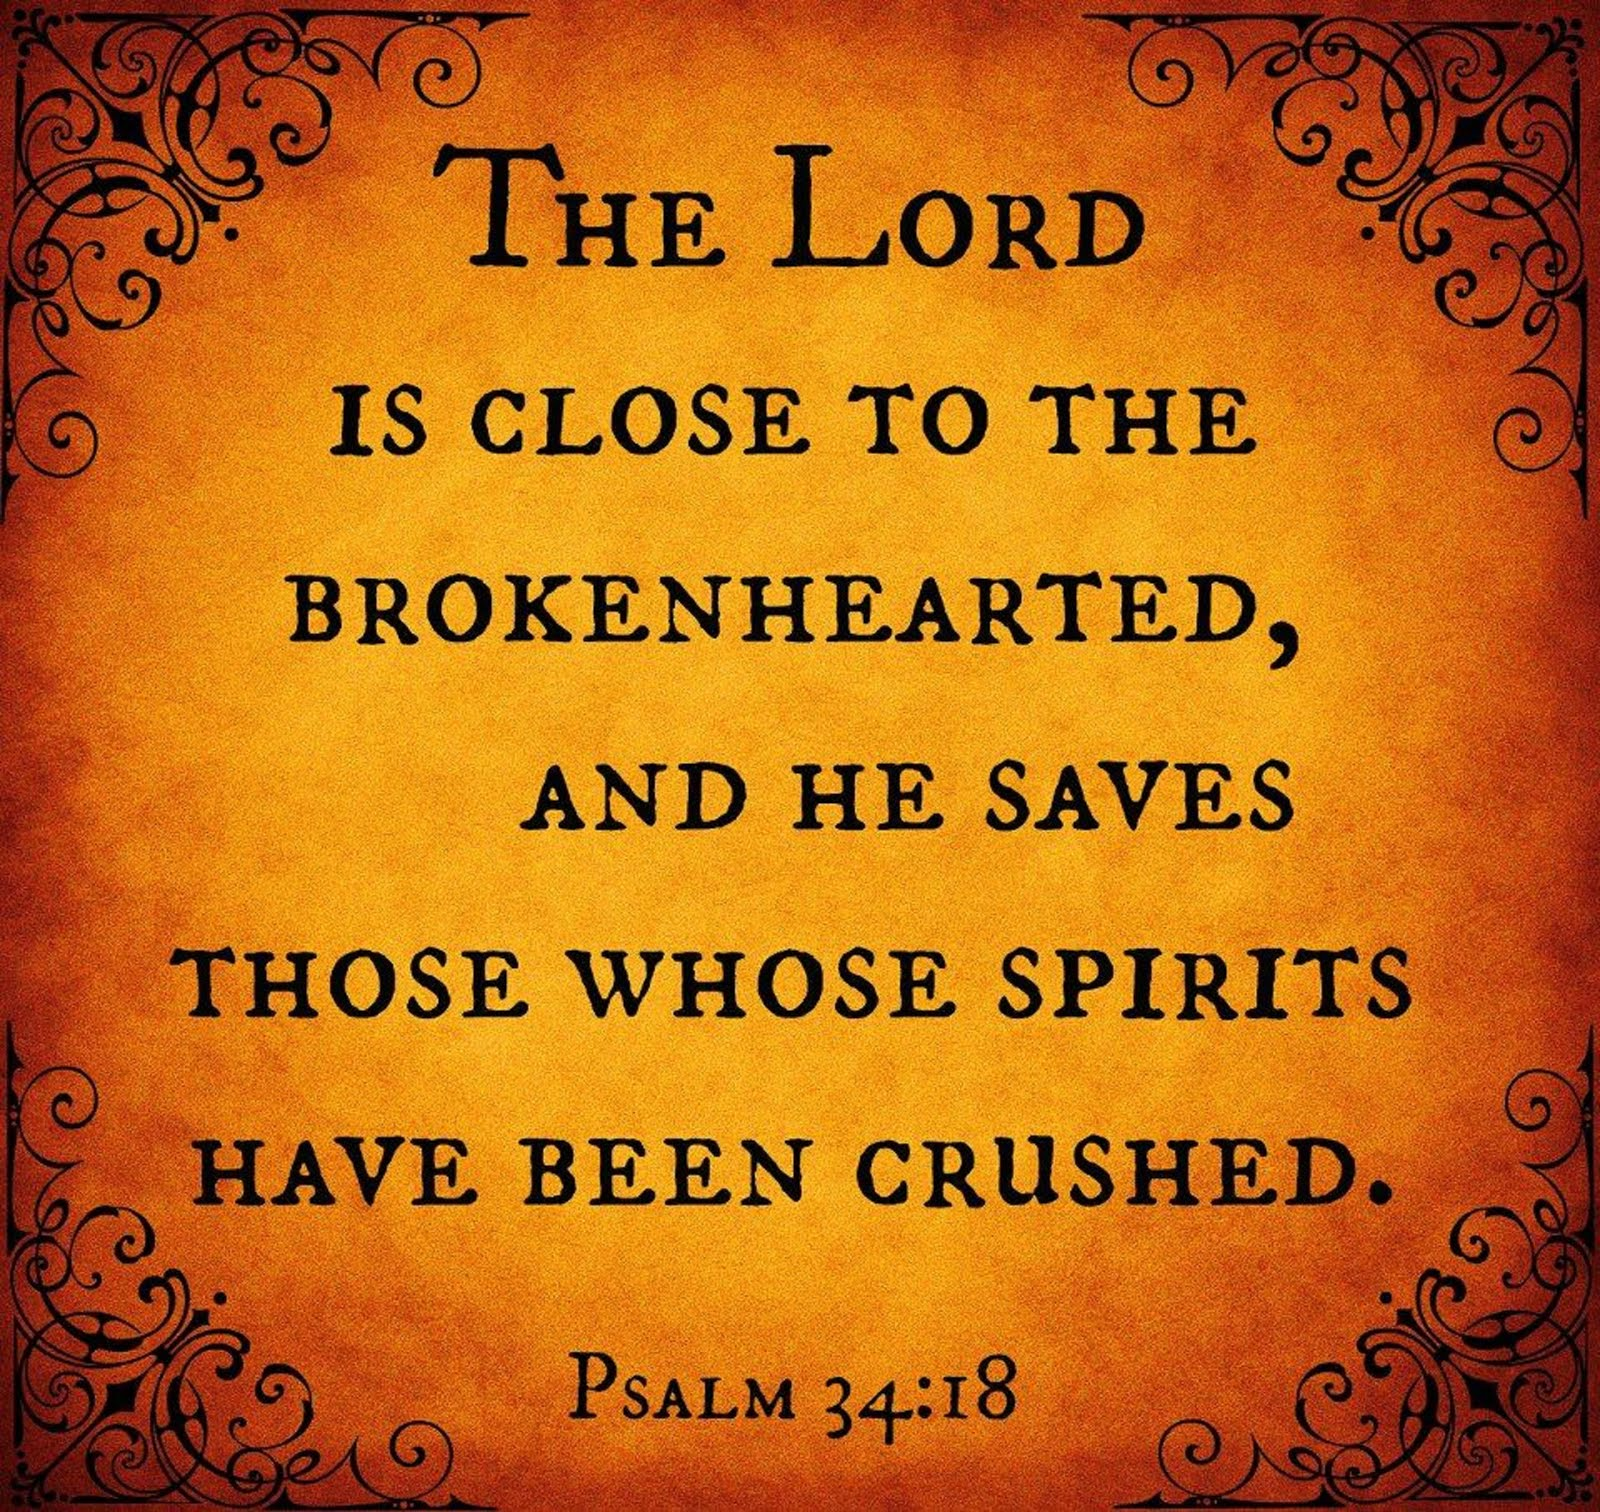 THE LORD IS CLOSE TO THE BROKEN HEARTED